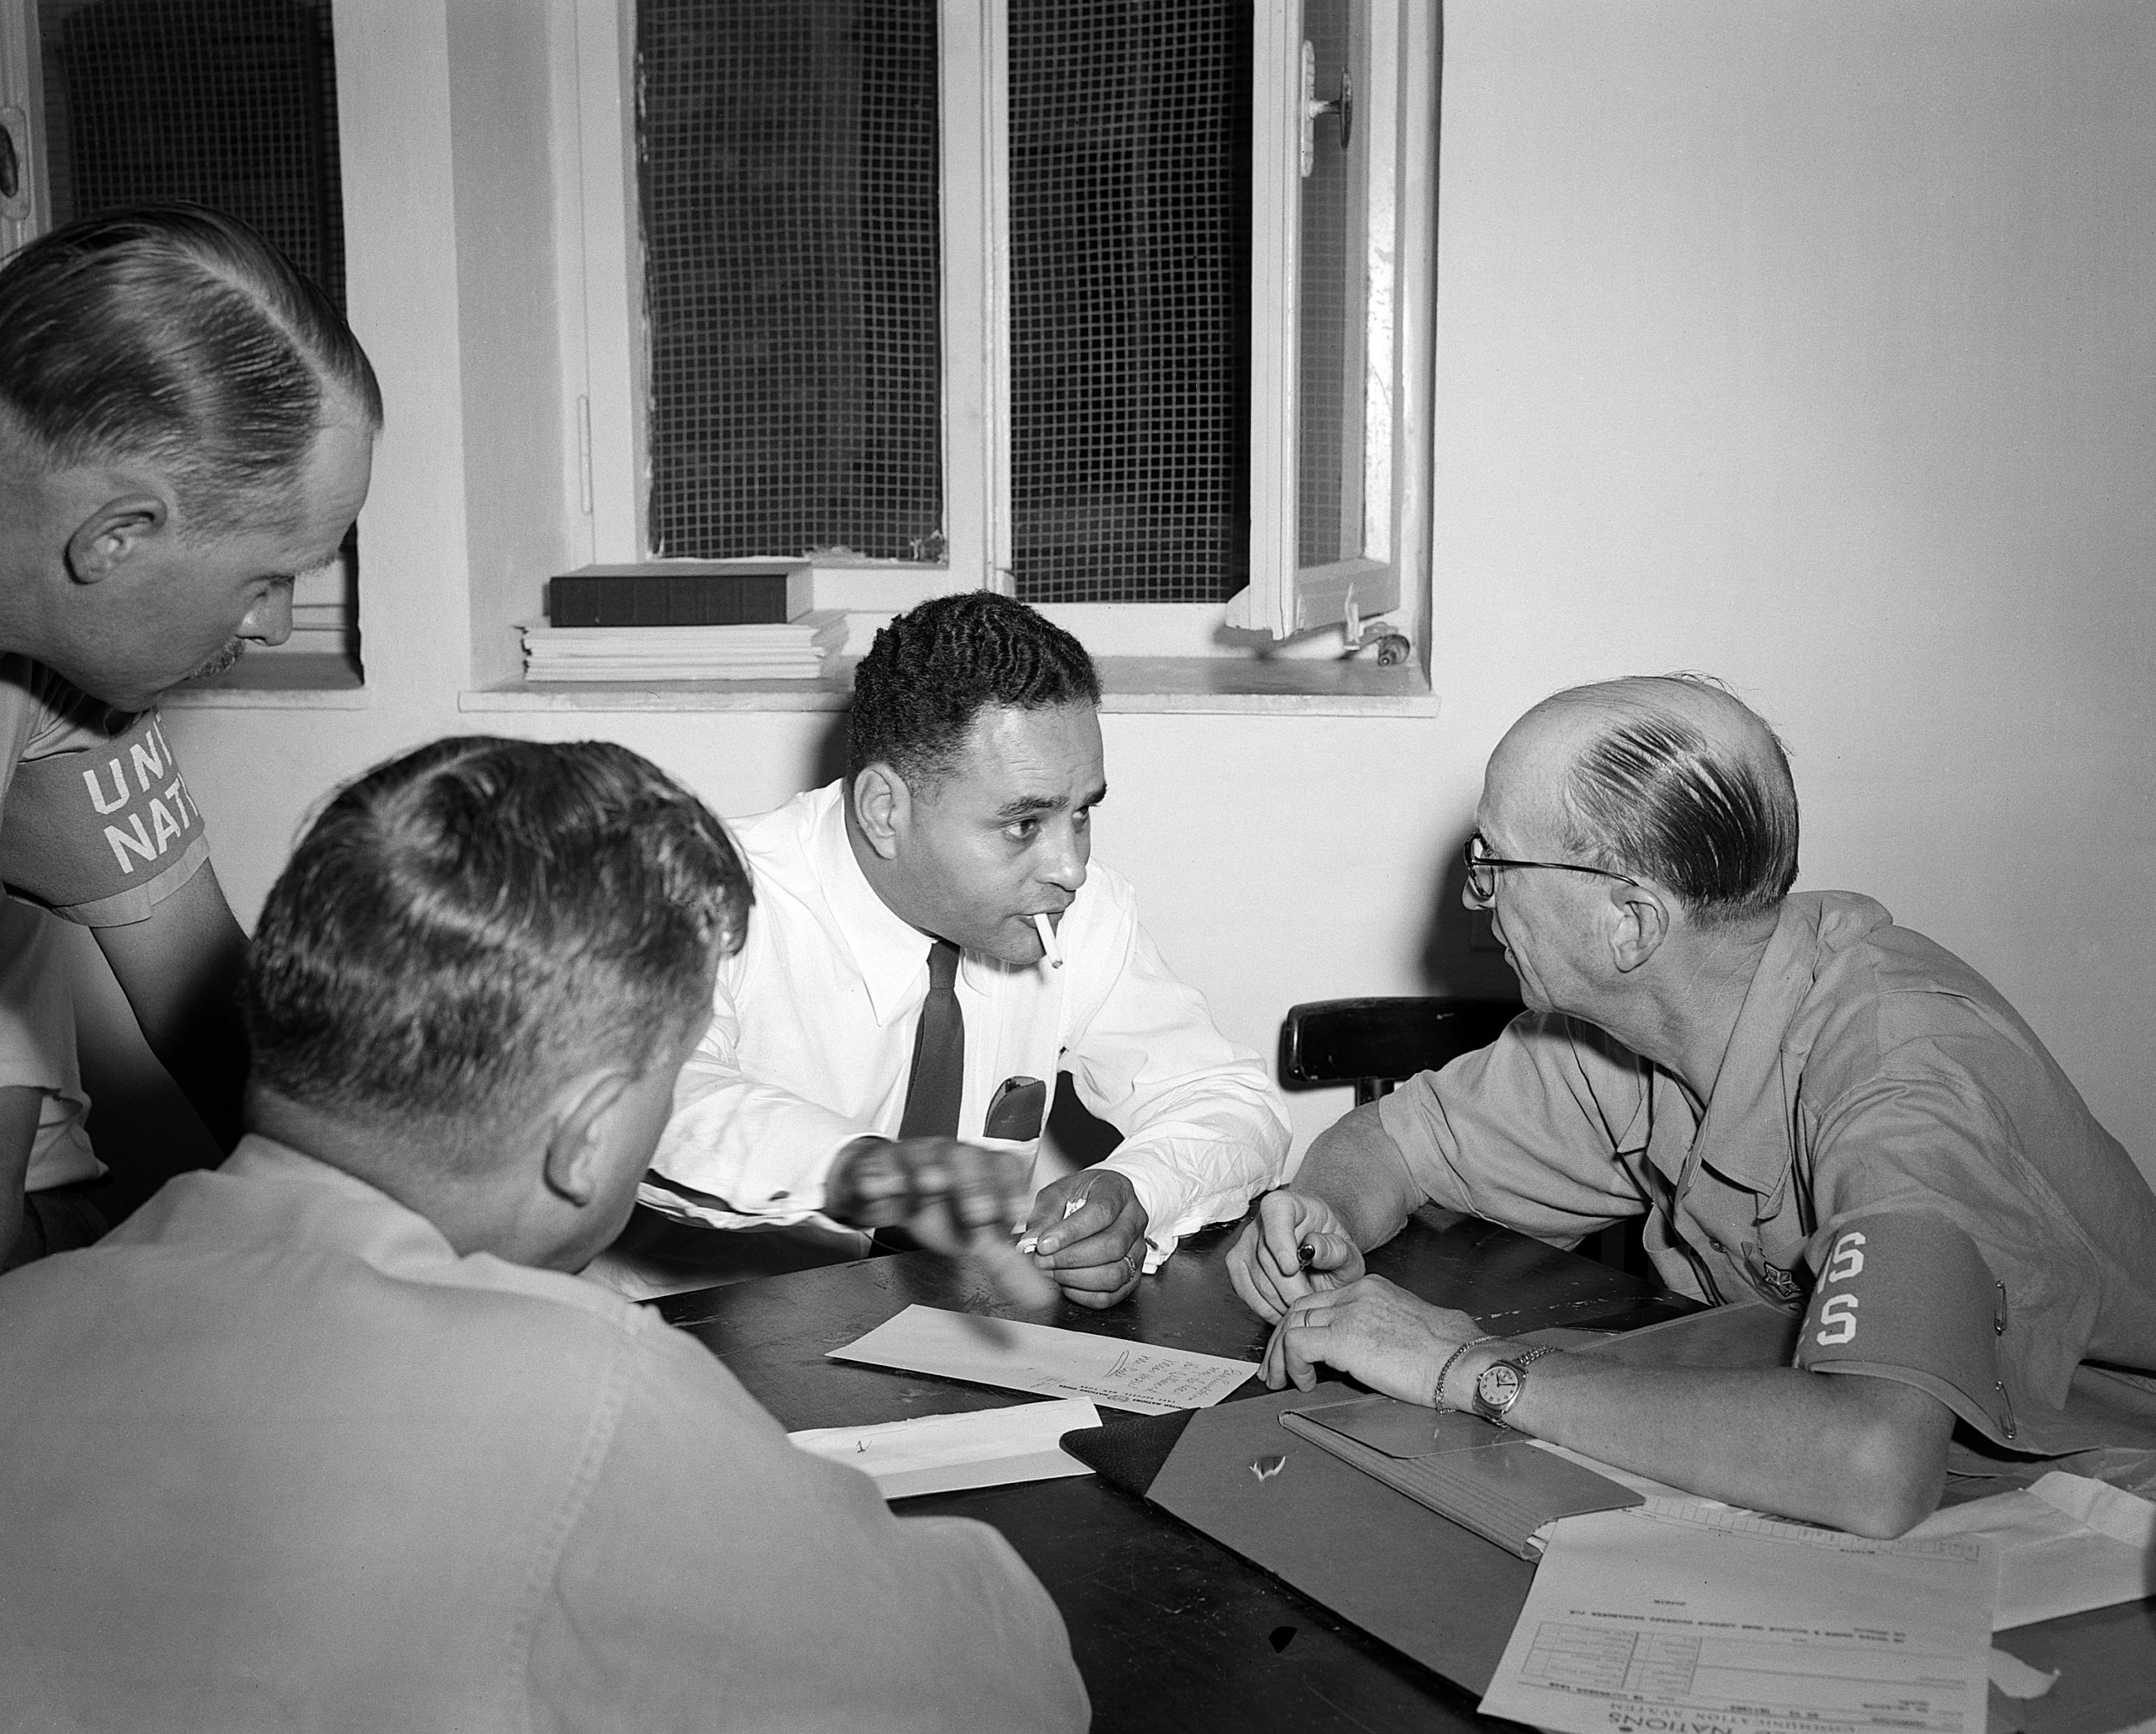 Ralph Bunche at a table negotiating in 1949.